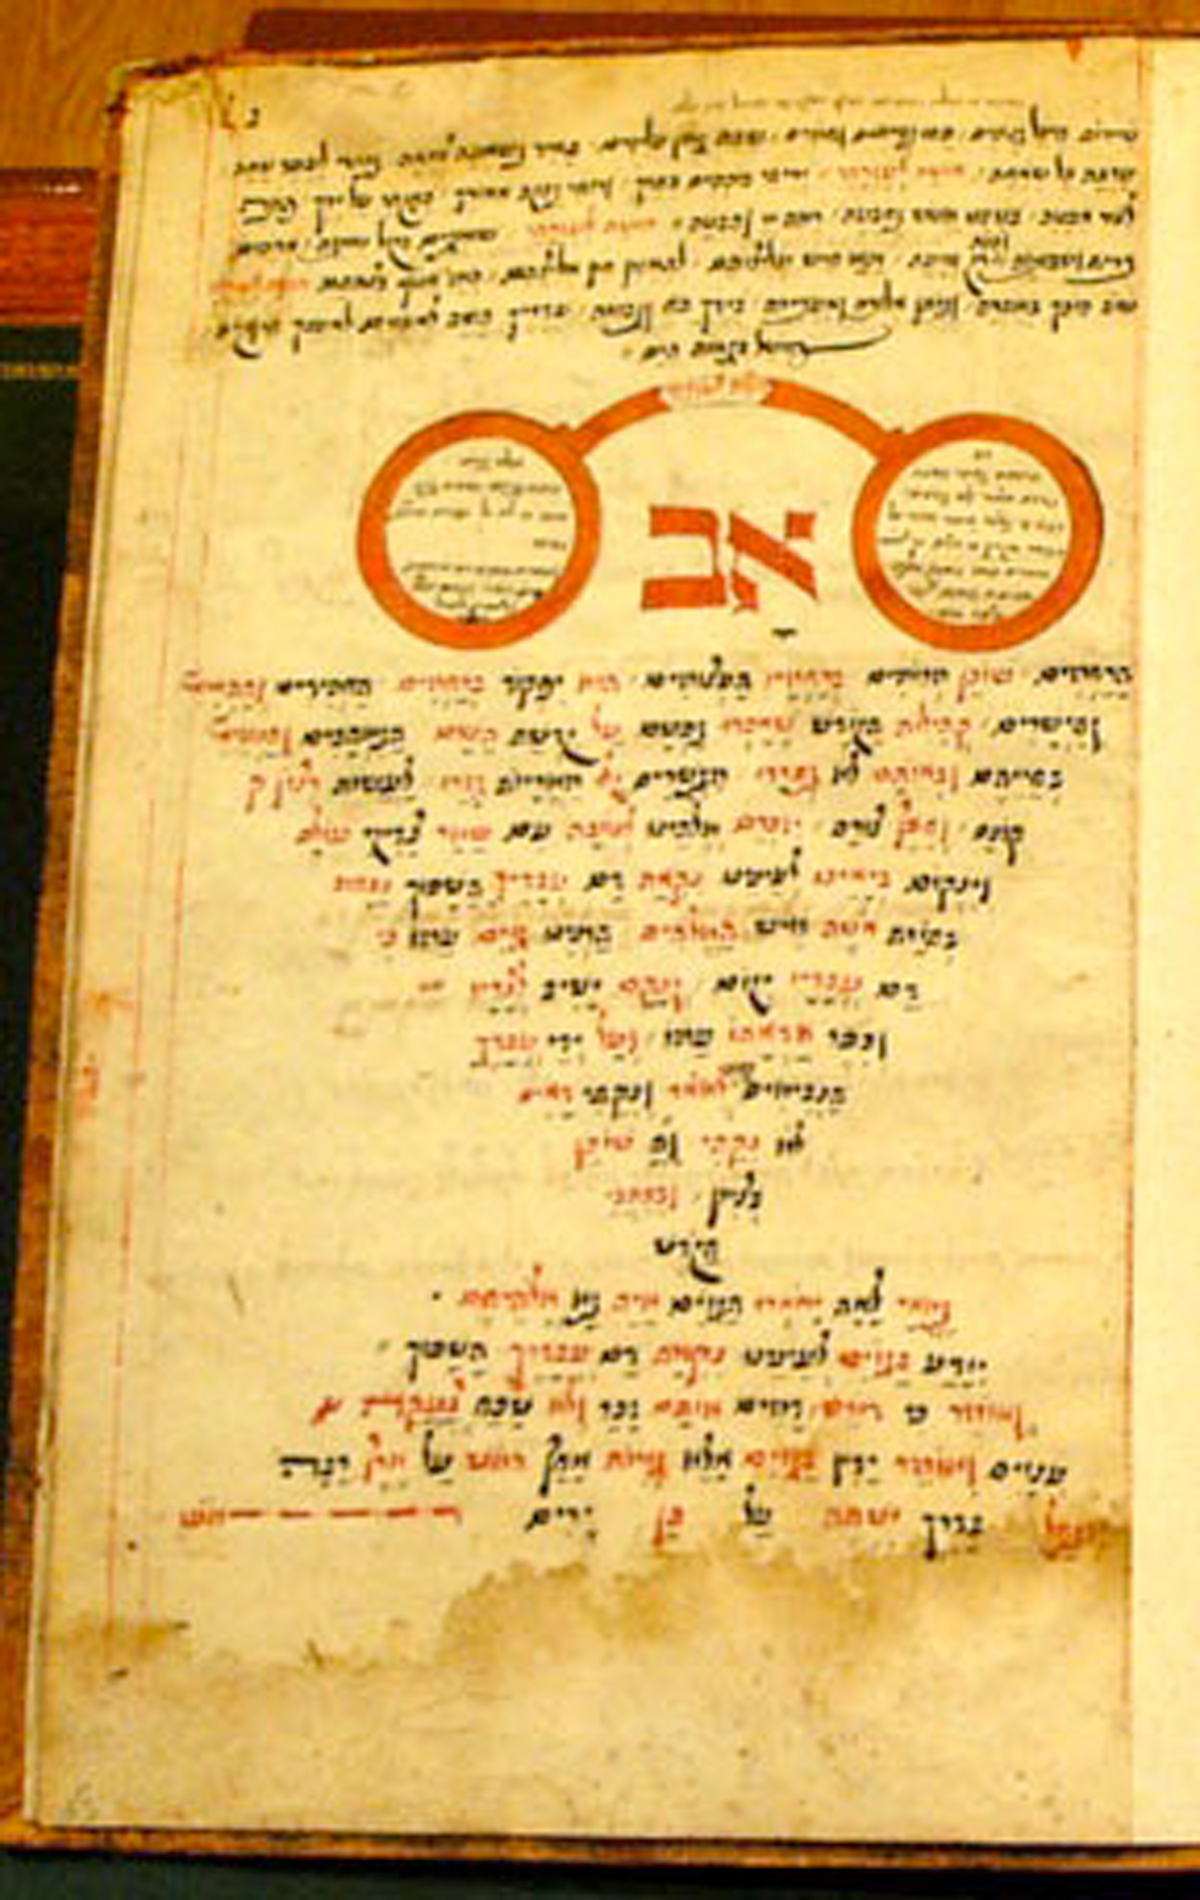 Av Harachamim, Siddur manuscript (1673) by Shimshon ben Yochanan HaLevi Courtesy Kestenbaum and Co.